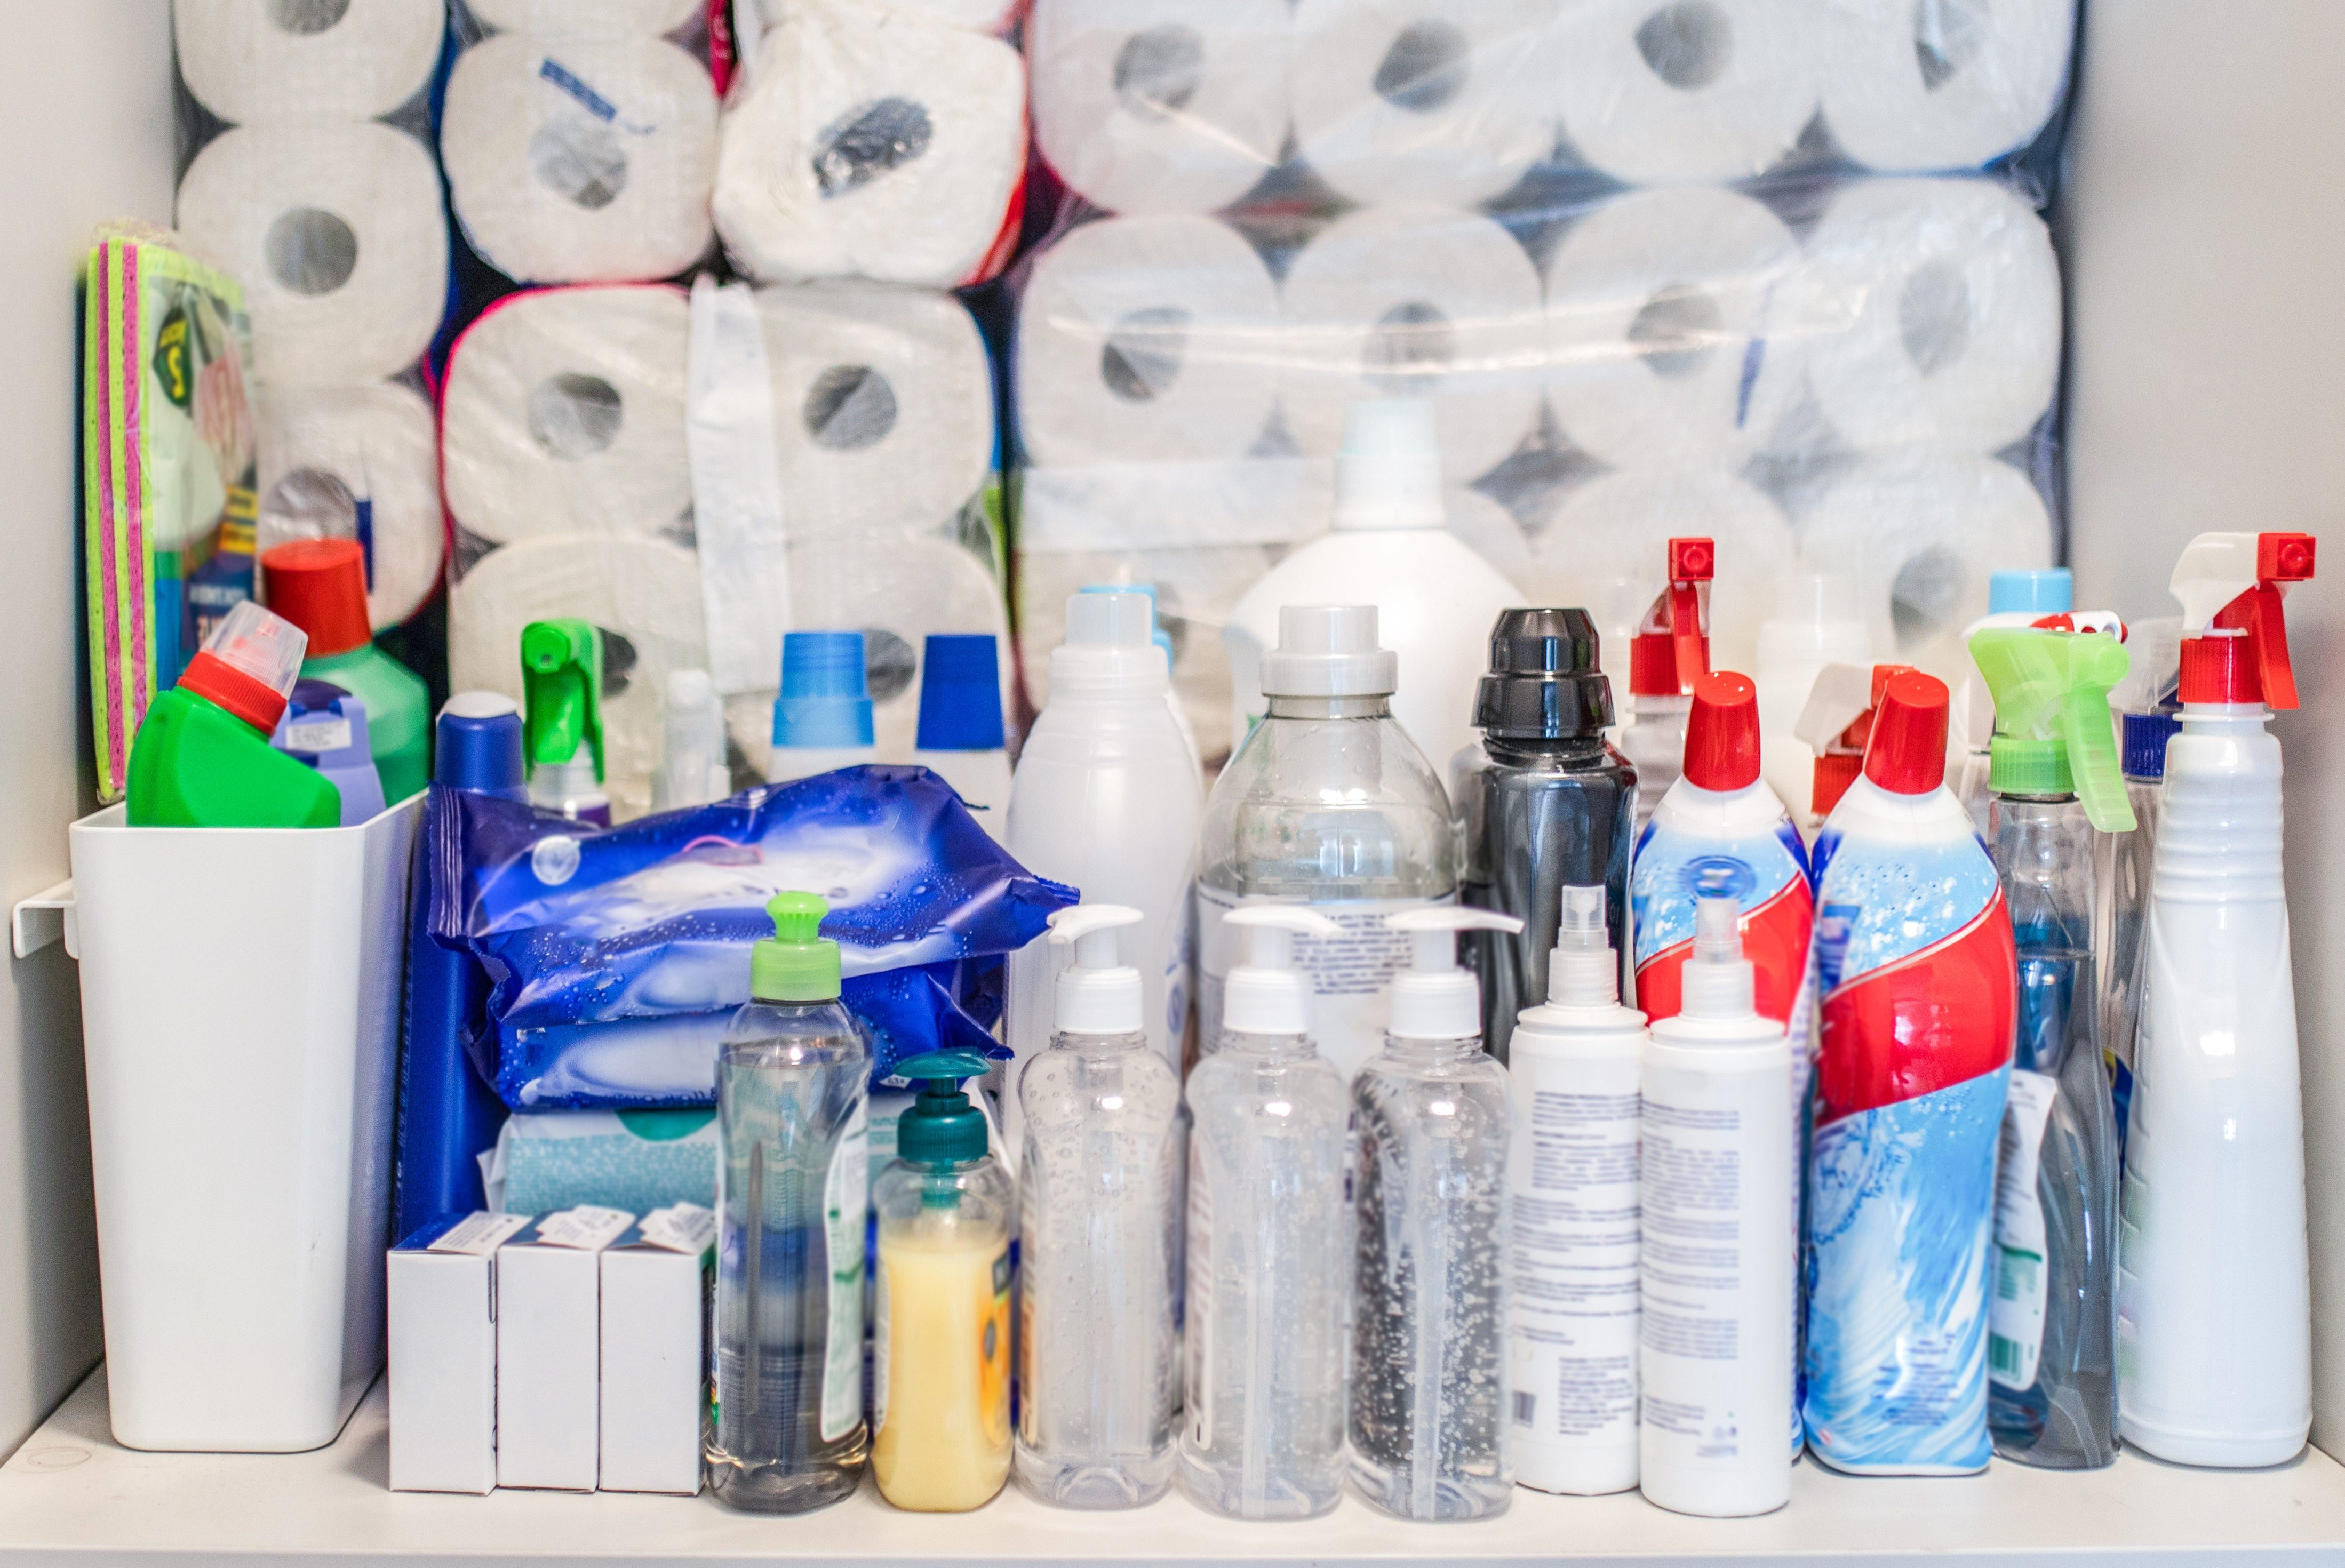 Hoarding food, toilet paper and cleaning products